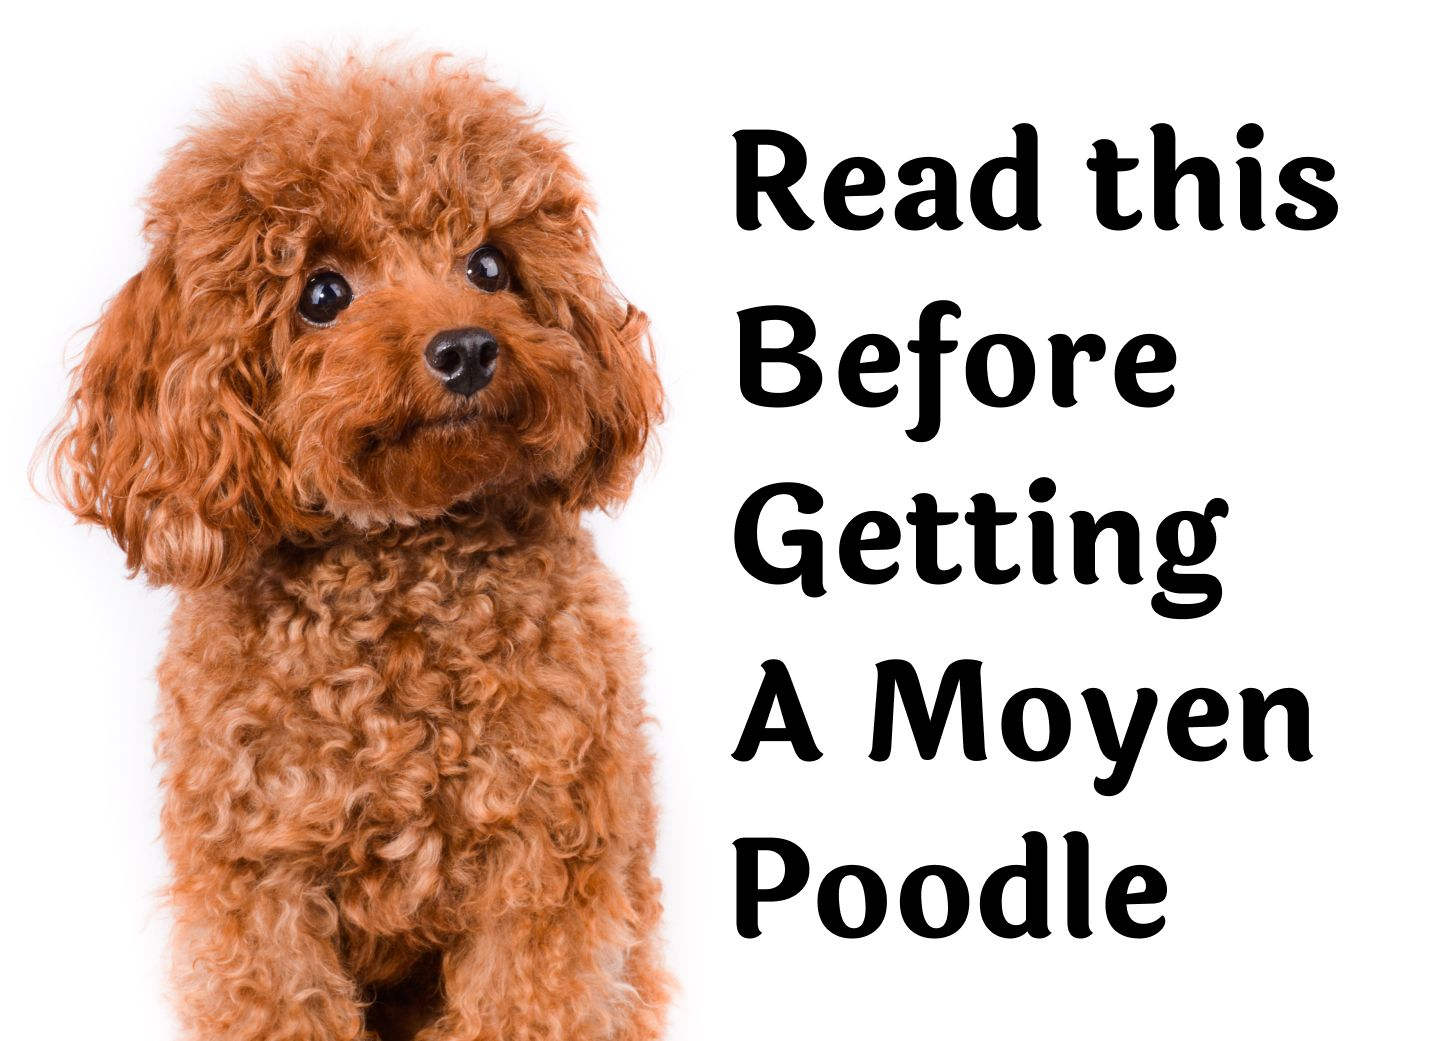 28 Questions to Consider Before Getting A Moyen Poodle